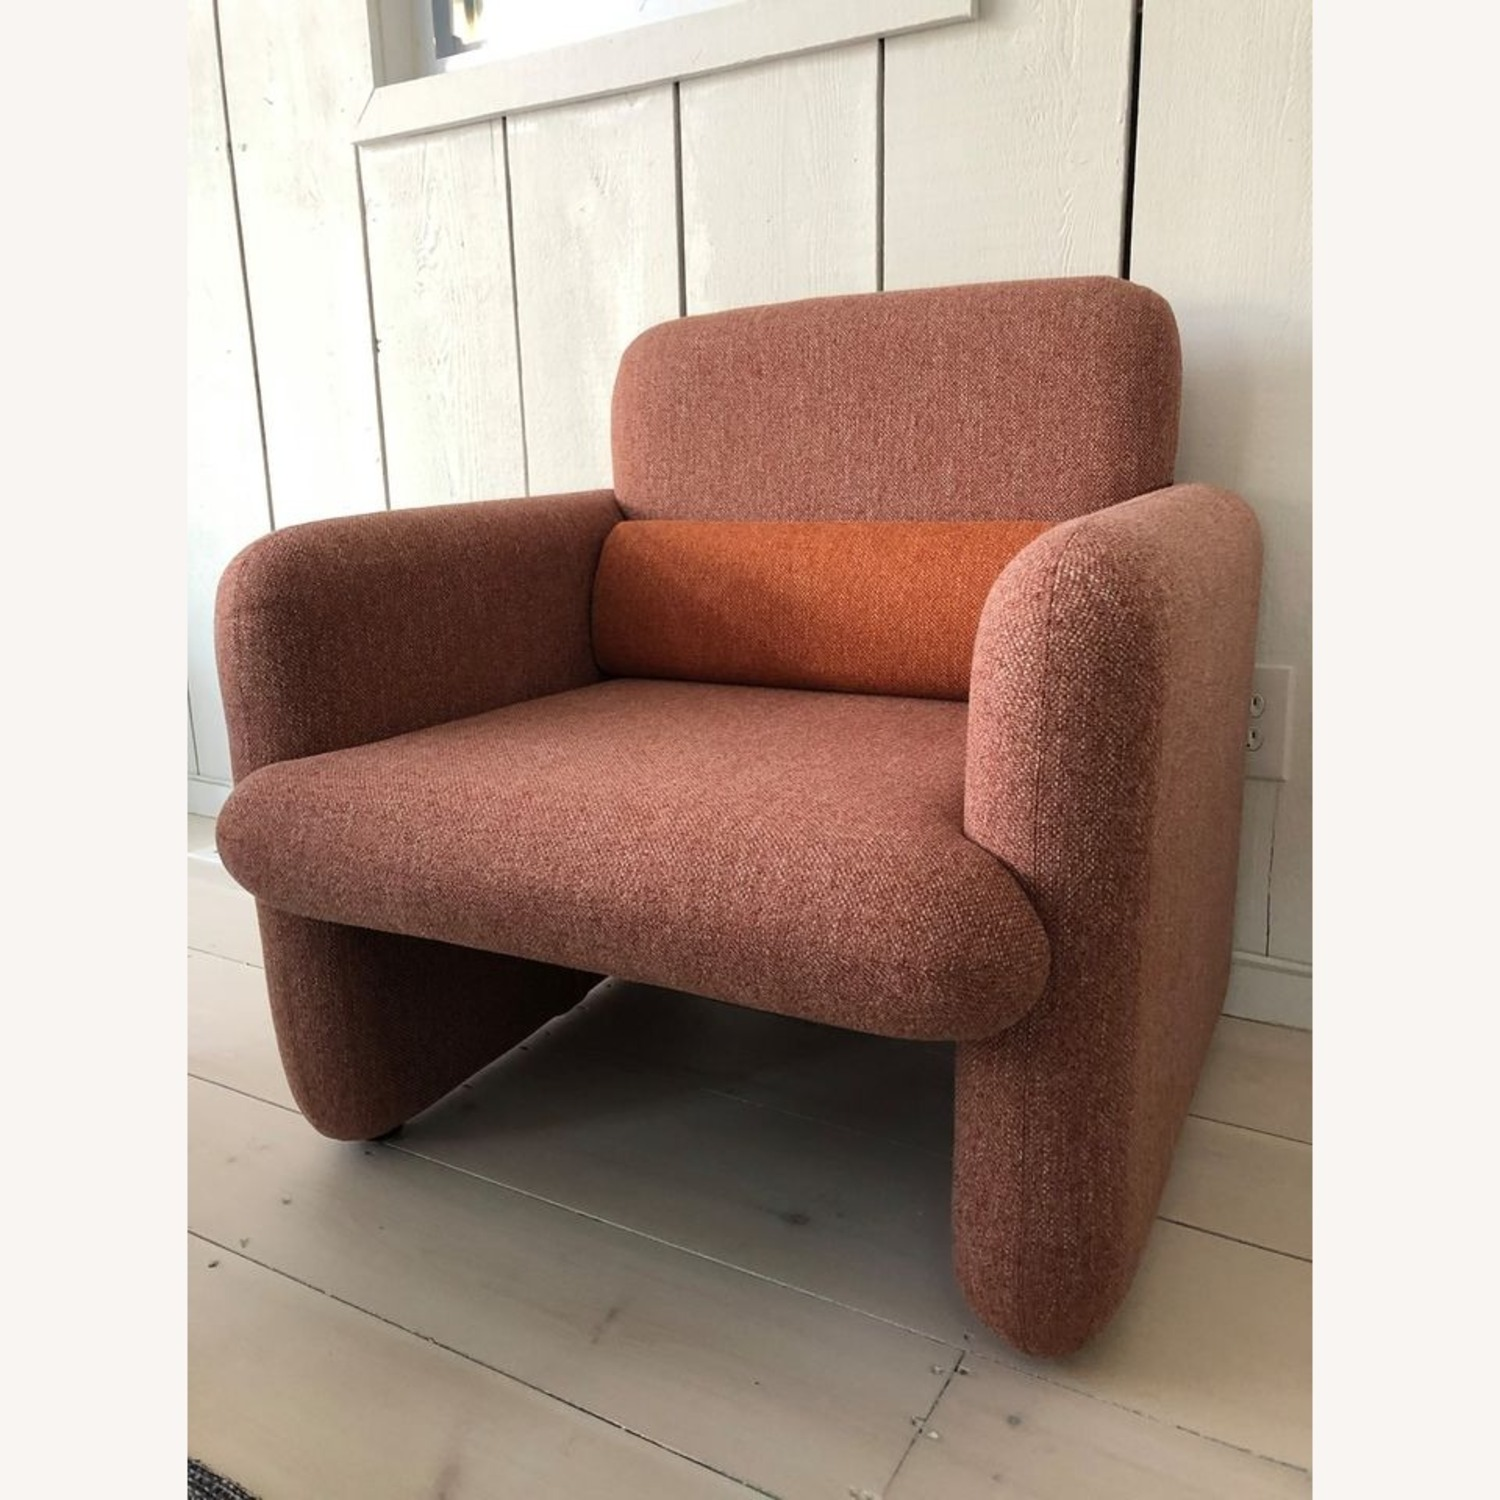 Industry West Plume Lounge Chair - Red/Pink - image-1